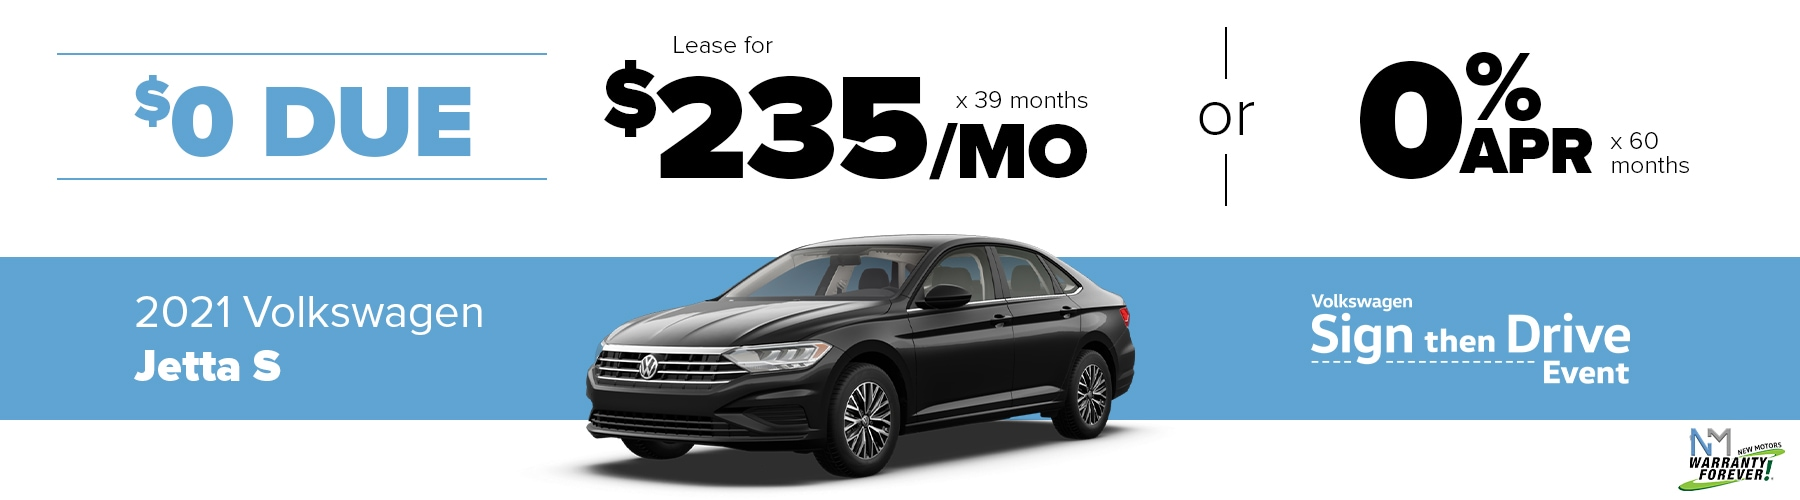 New Motors VW Monthly Offer Jetta